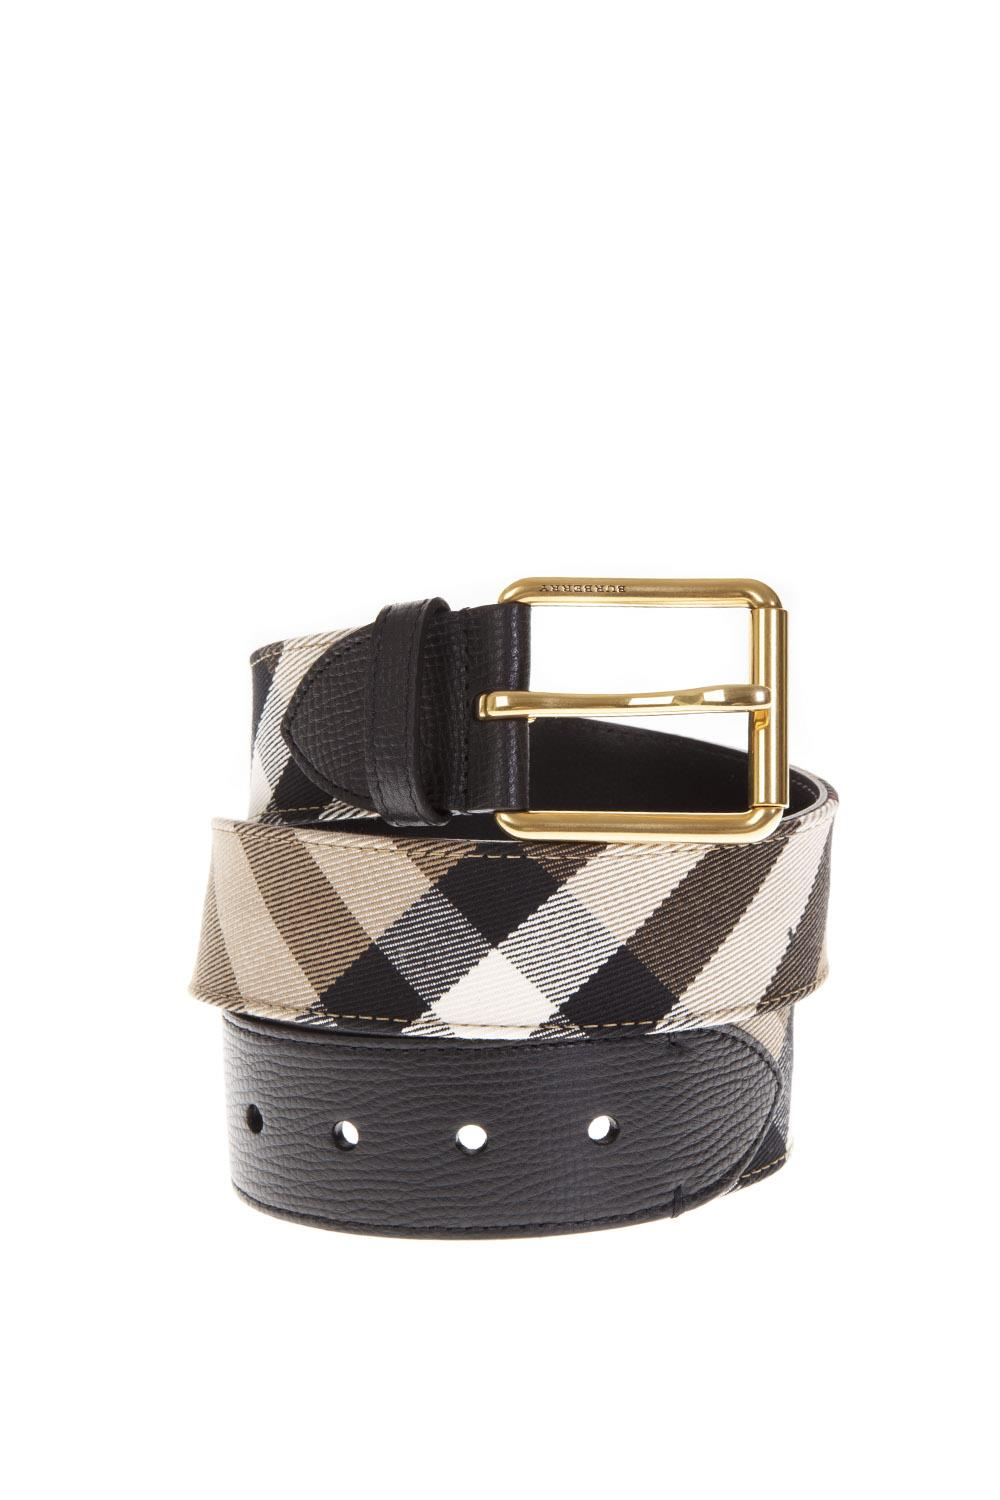 Burberry House Check Leather Belt in Black